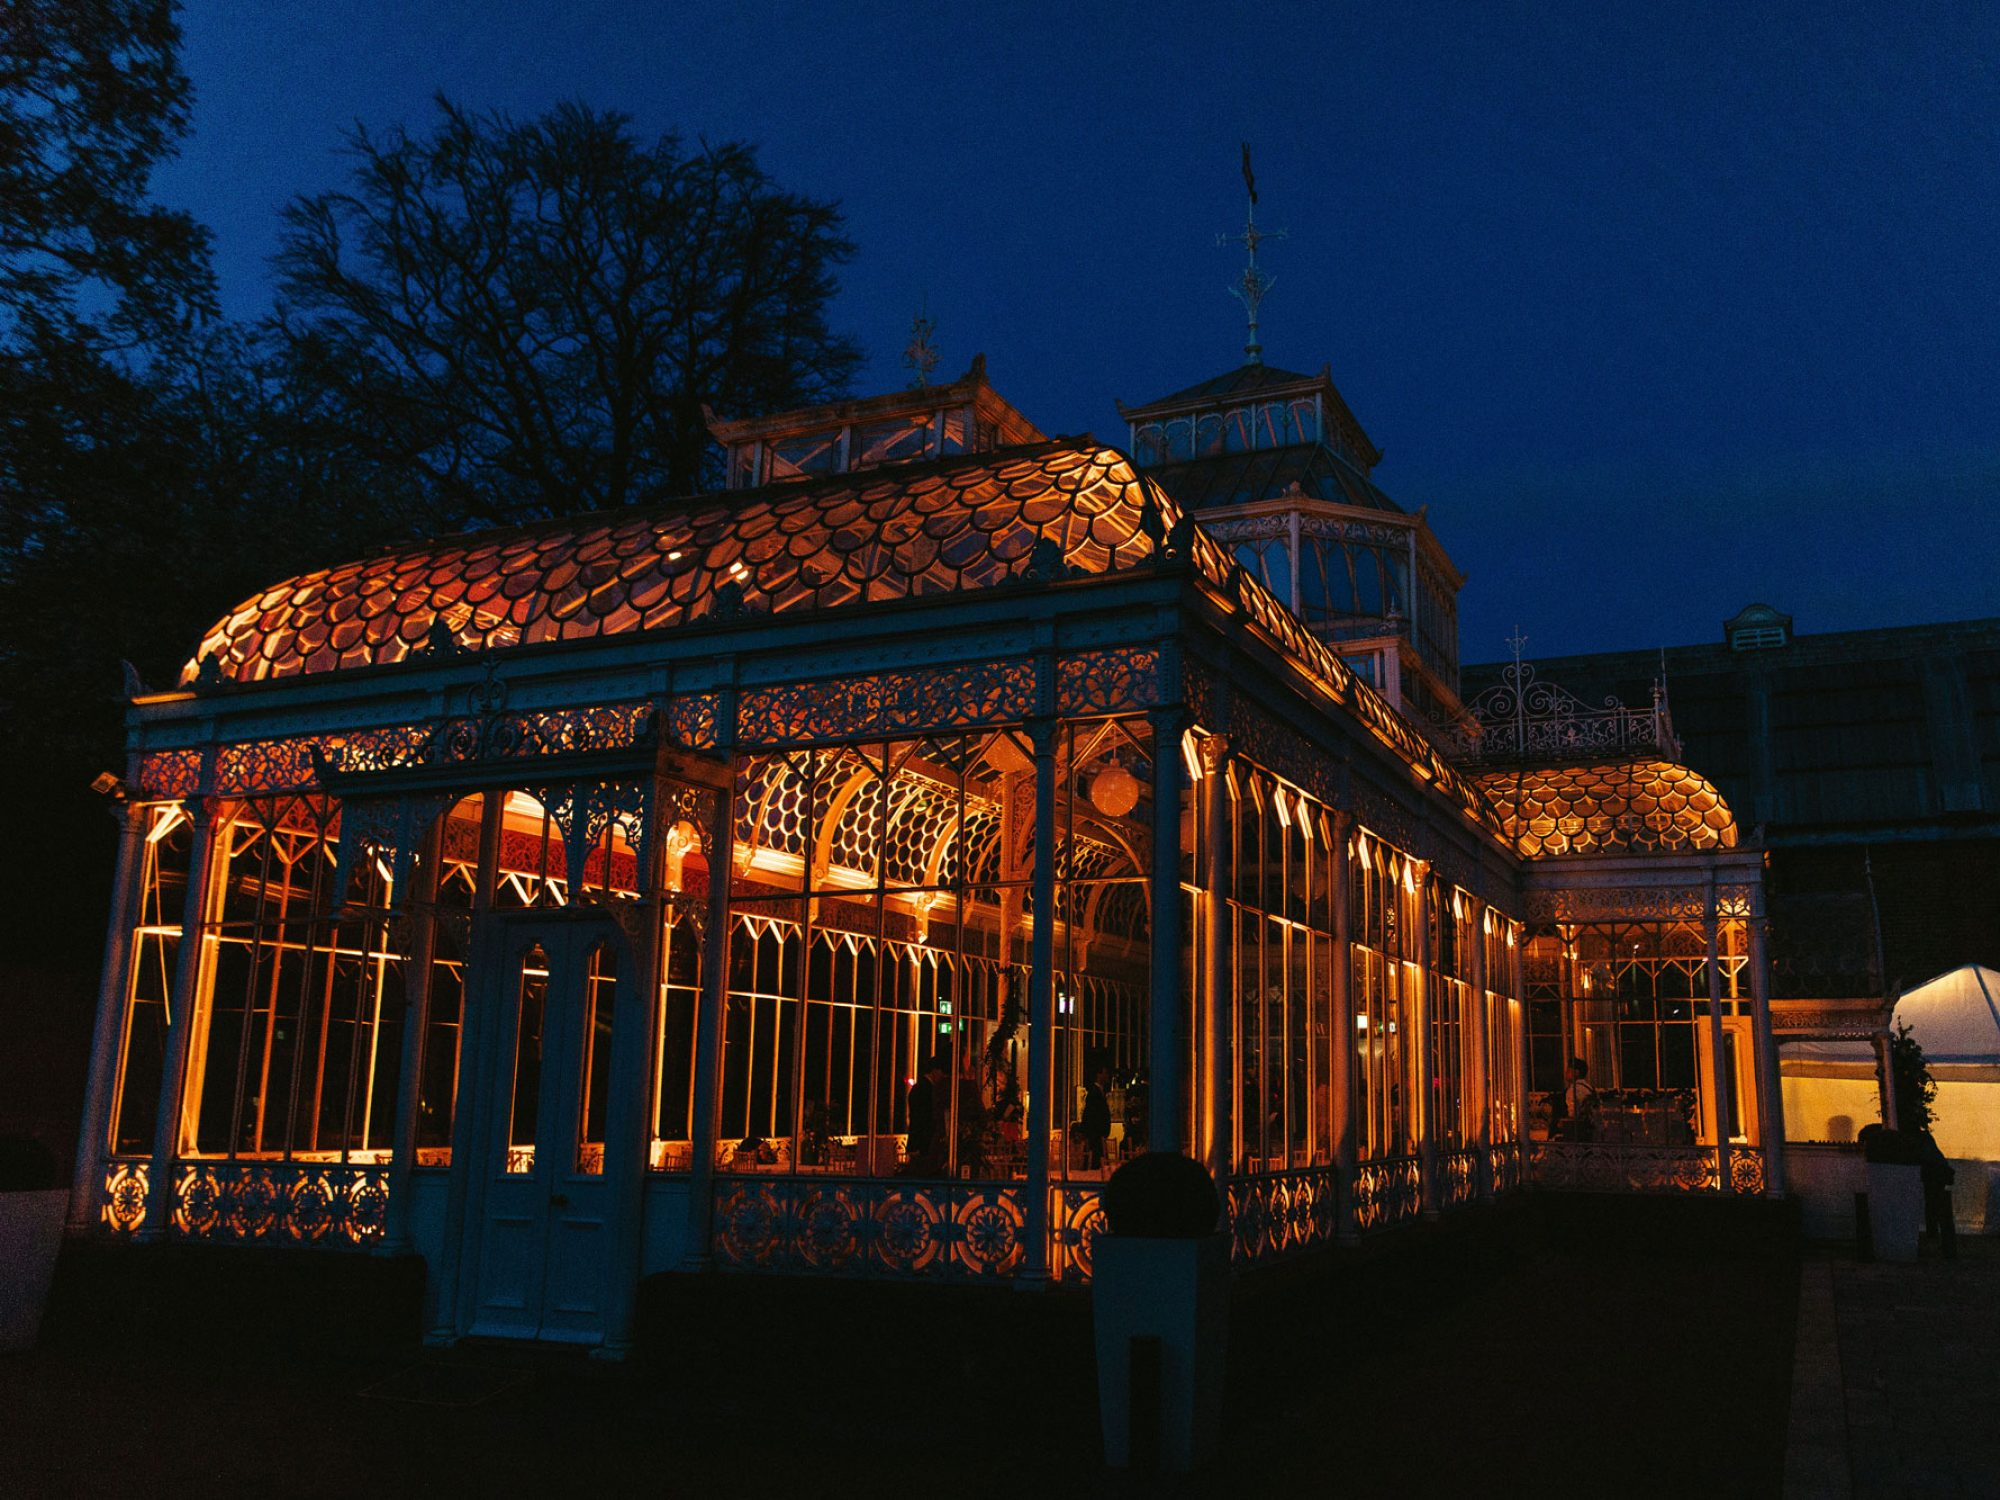 A conservatory lit up at night, as seen from outside